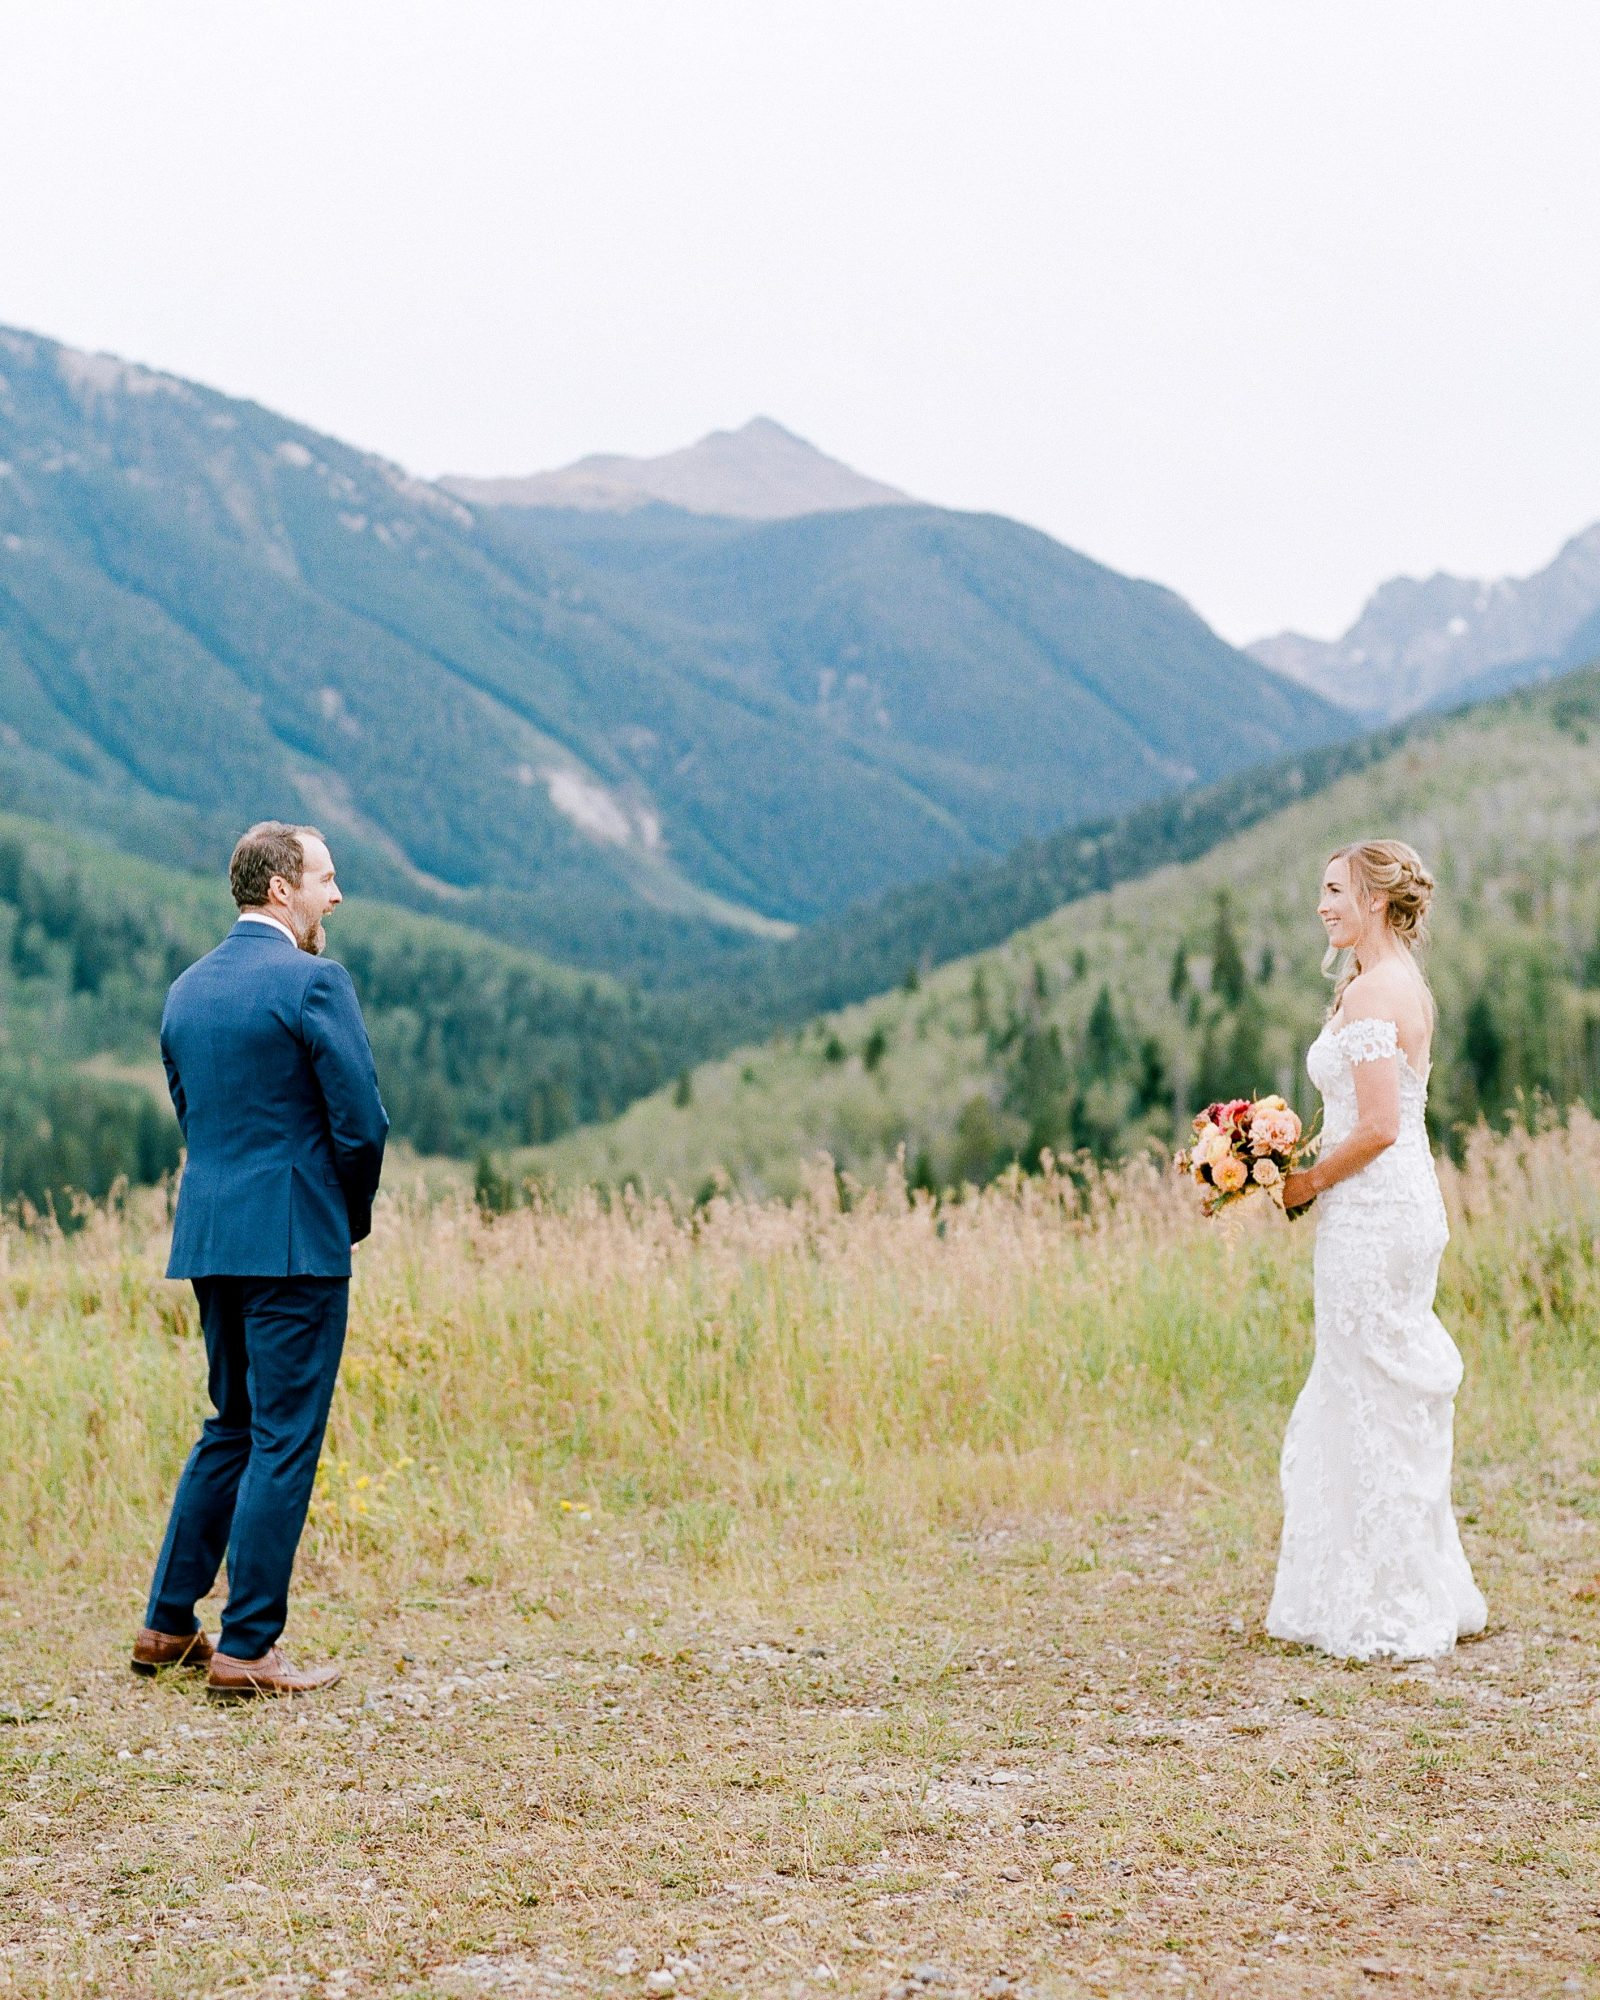 jill phil wedding couple first look surrounded by mountain view